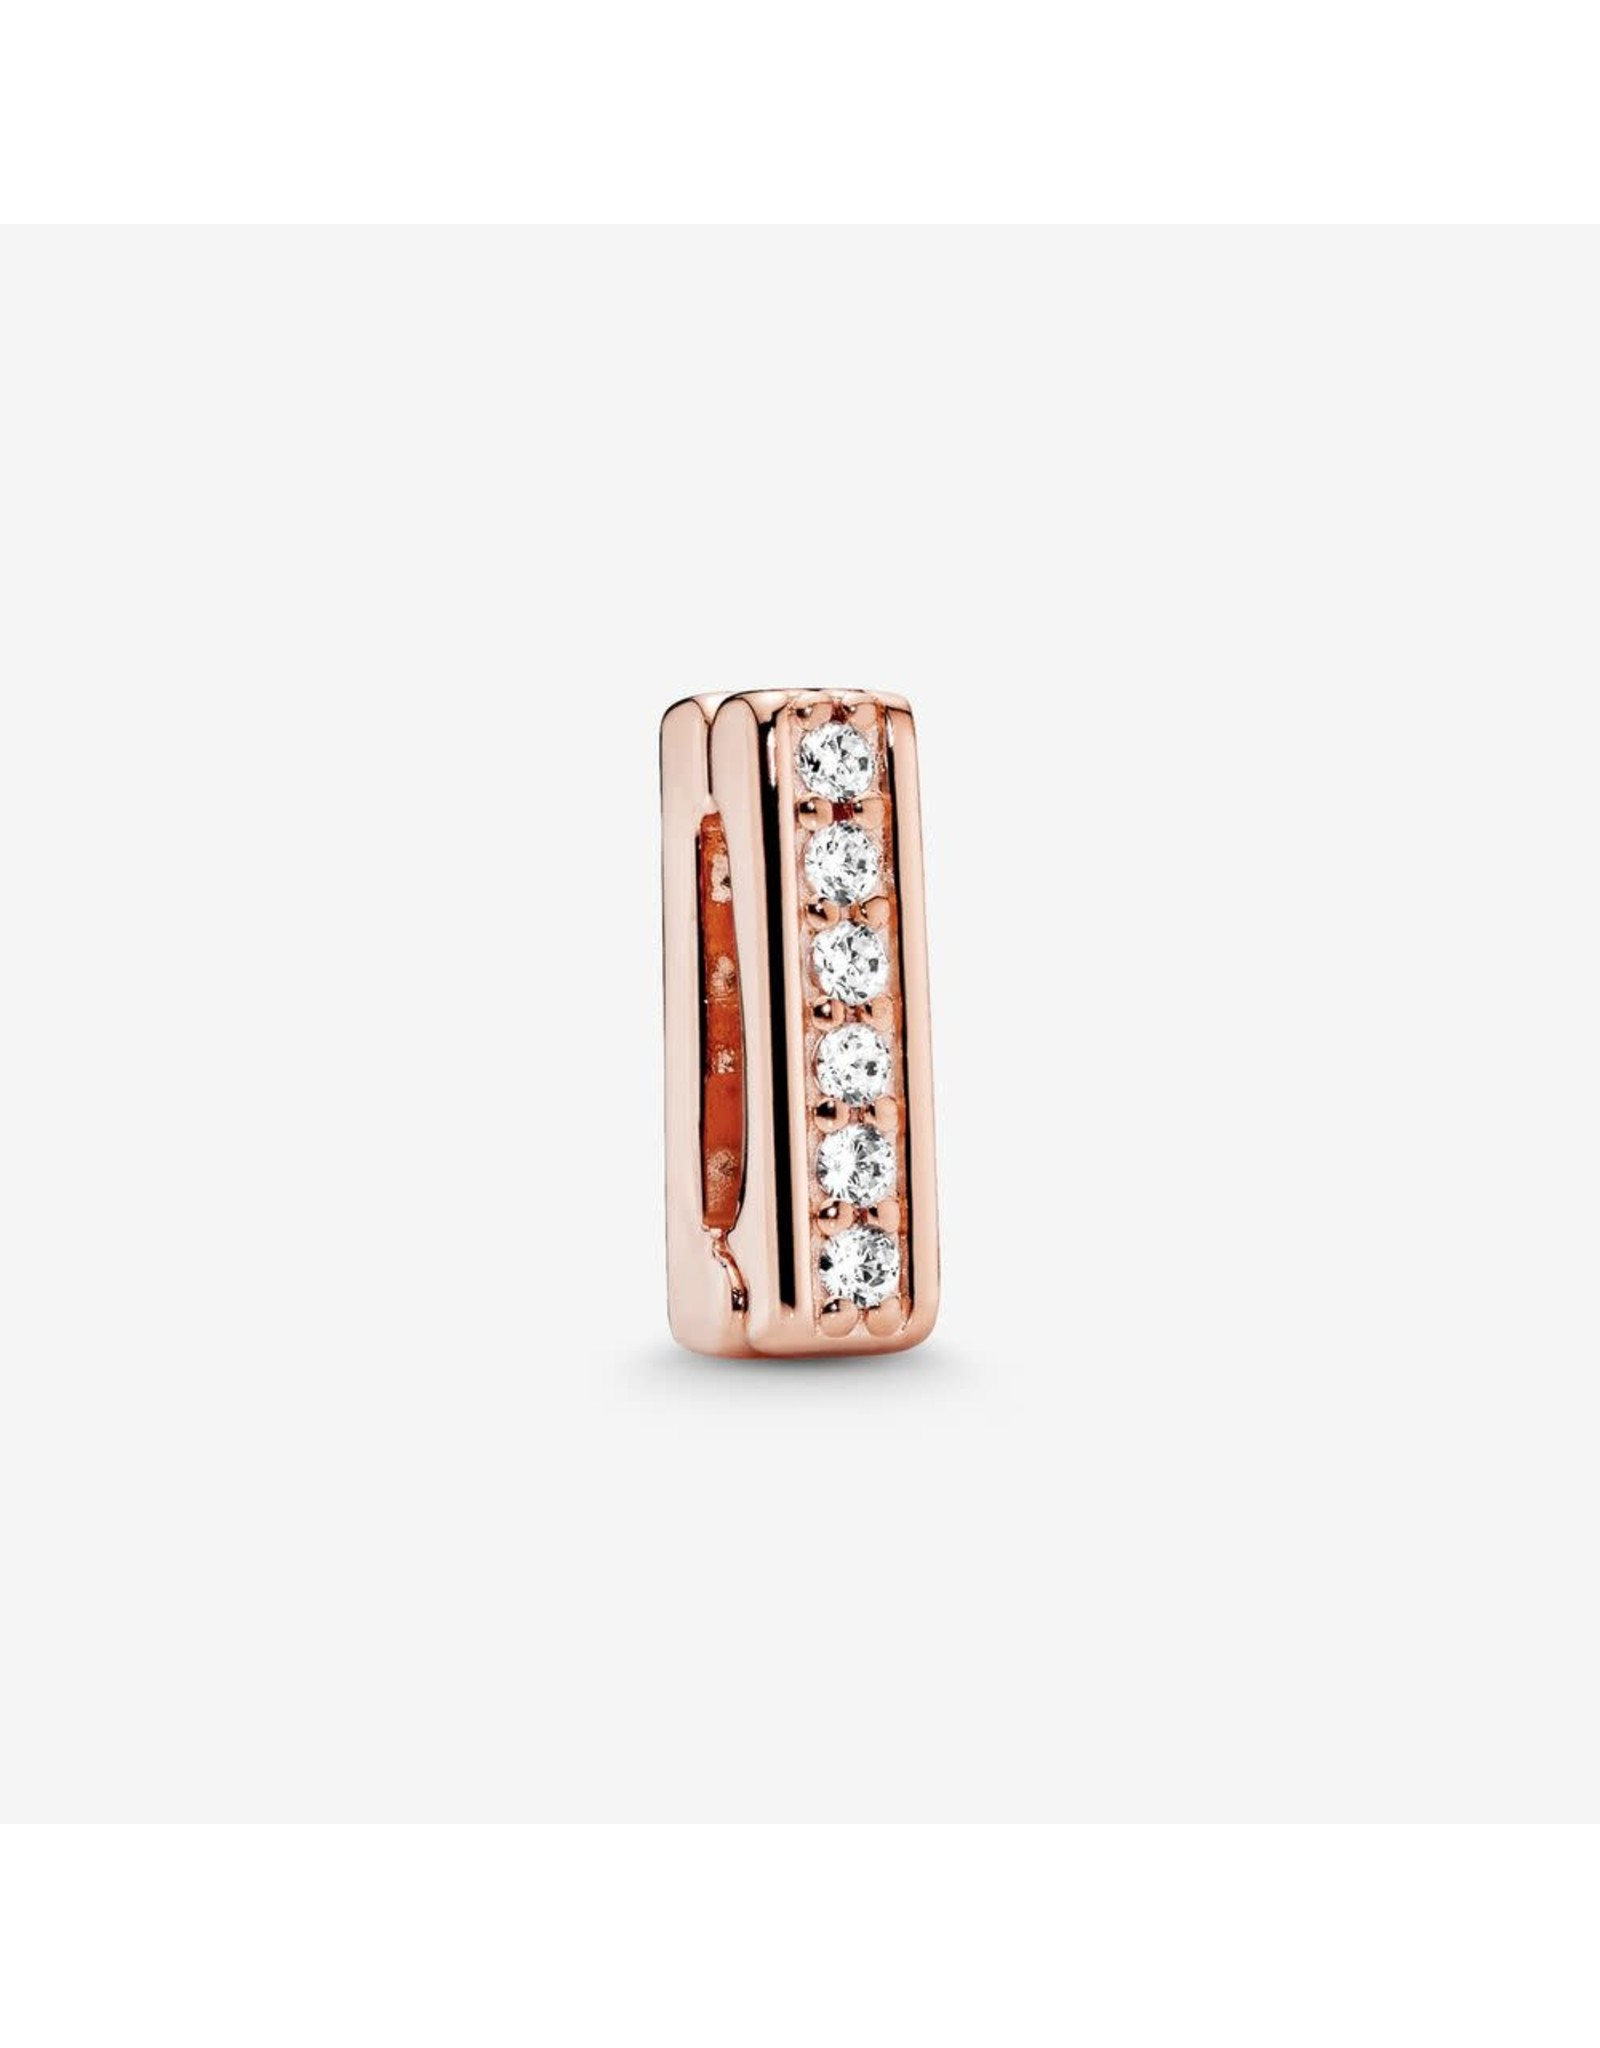 Pandora Pandora Reflexions Clip Charm In Rose Gold With 6 Bead-Set Clear CZ